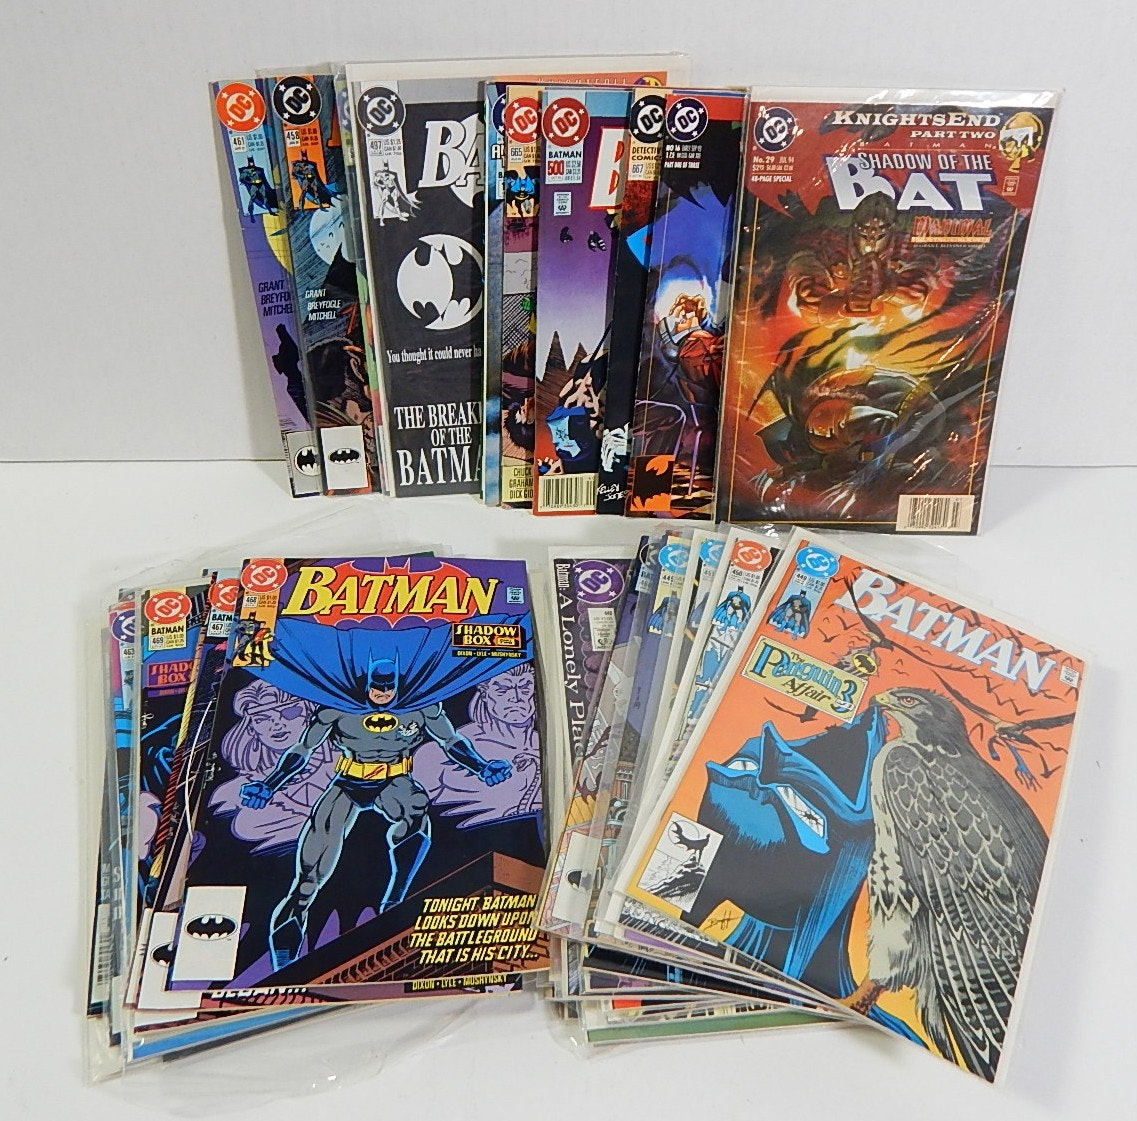 DC Comics with Batman, Knightfall Batman, More - 43 Lot Count